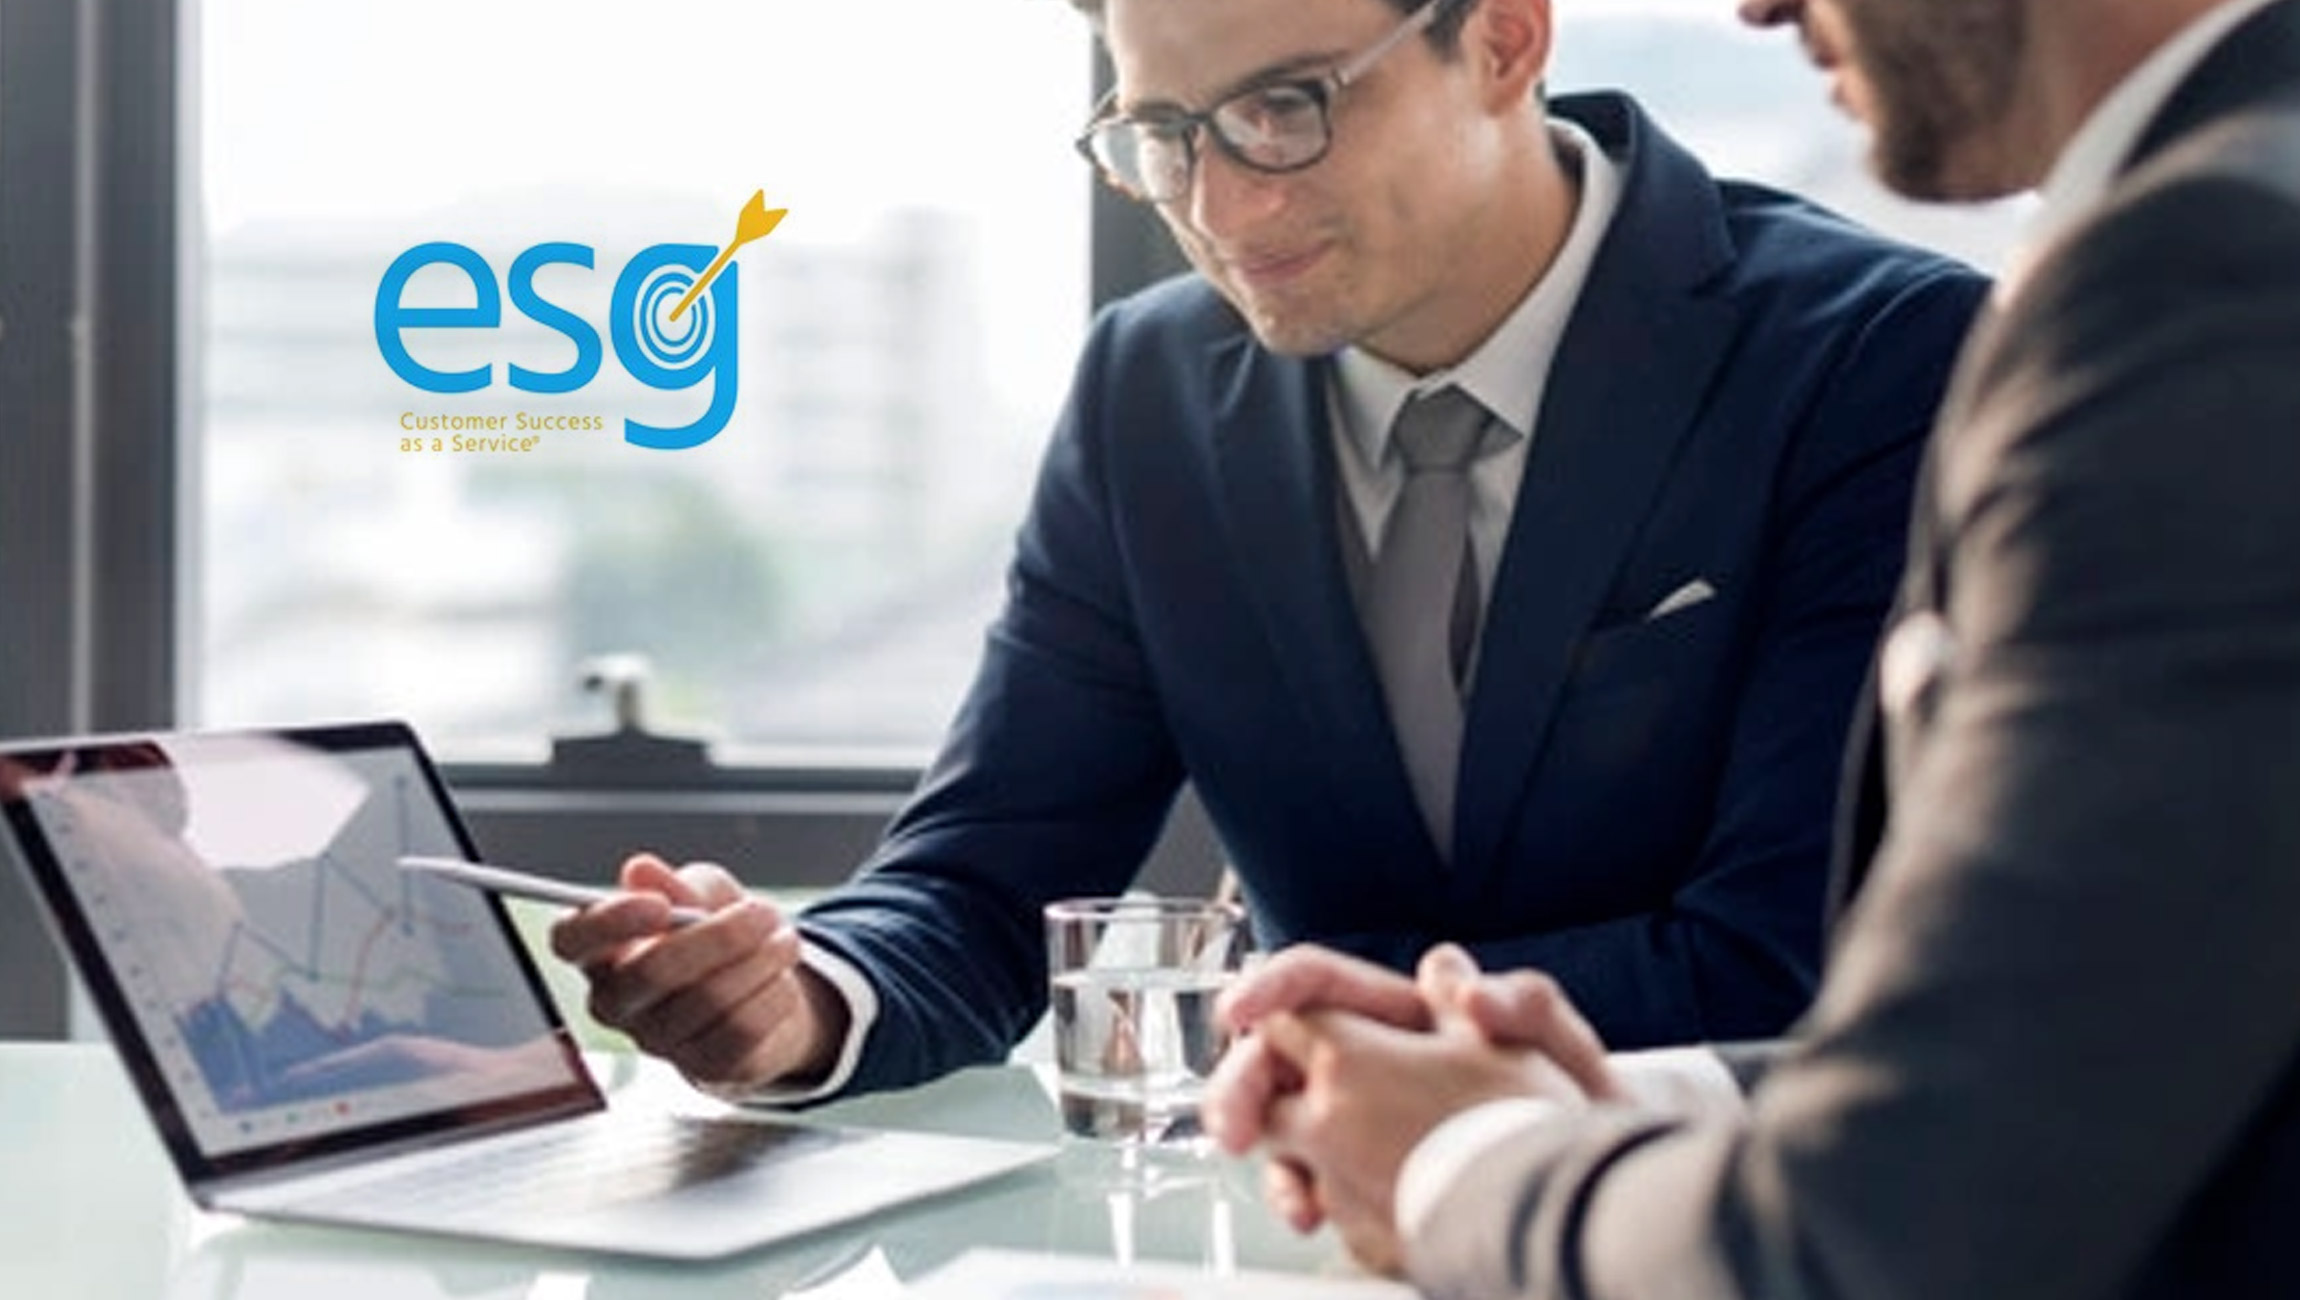 ESG Sees Exponential Growth in Customer Success as a Service®